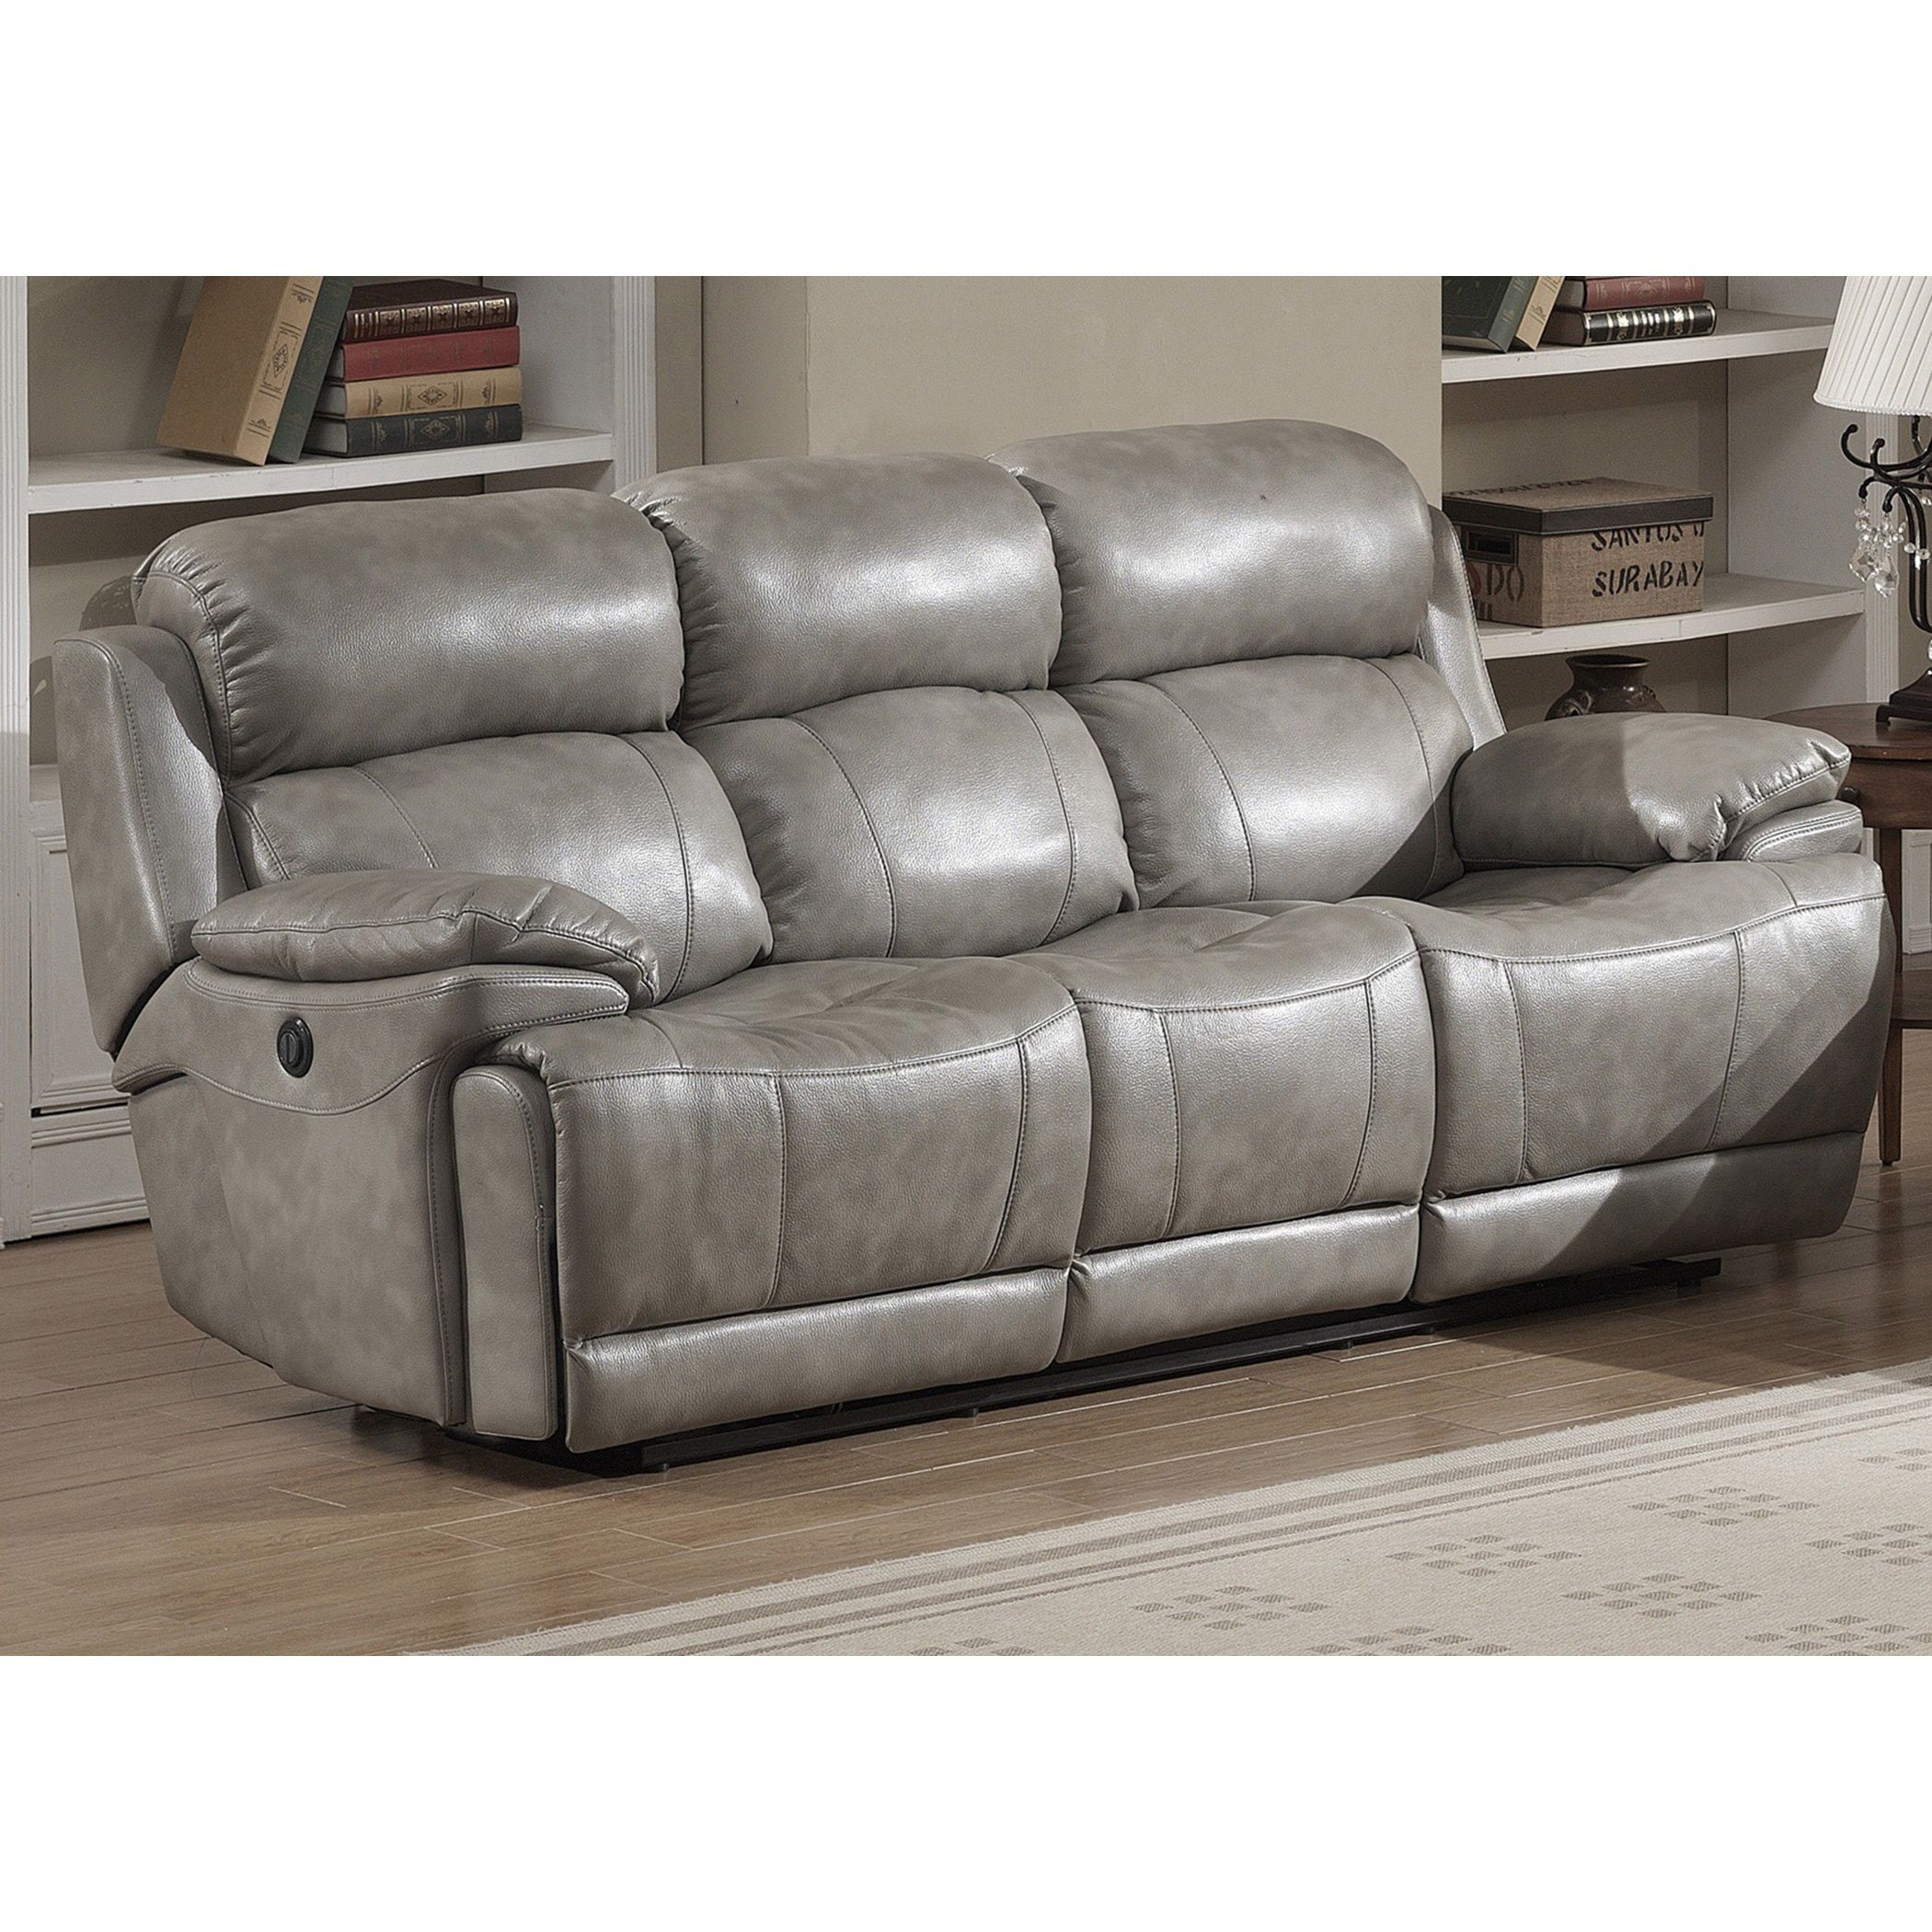 Overstock Com Online Shopping Bedding Furniture Electronics Jewelry Clothing More Living Room Recliner Reclining Sofa Leather Reclining Loveseat